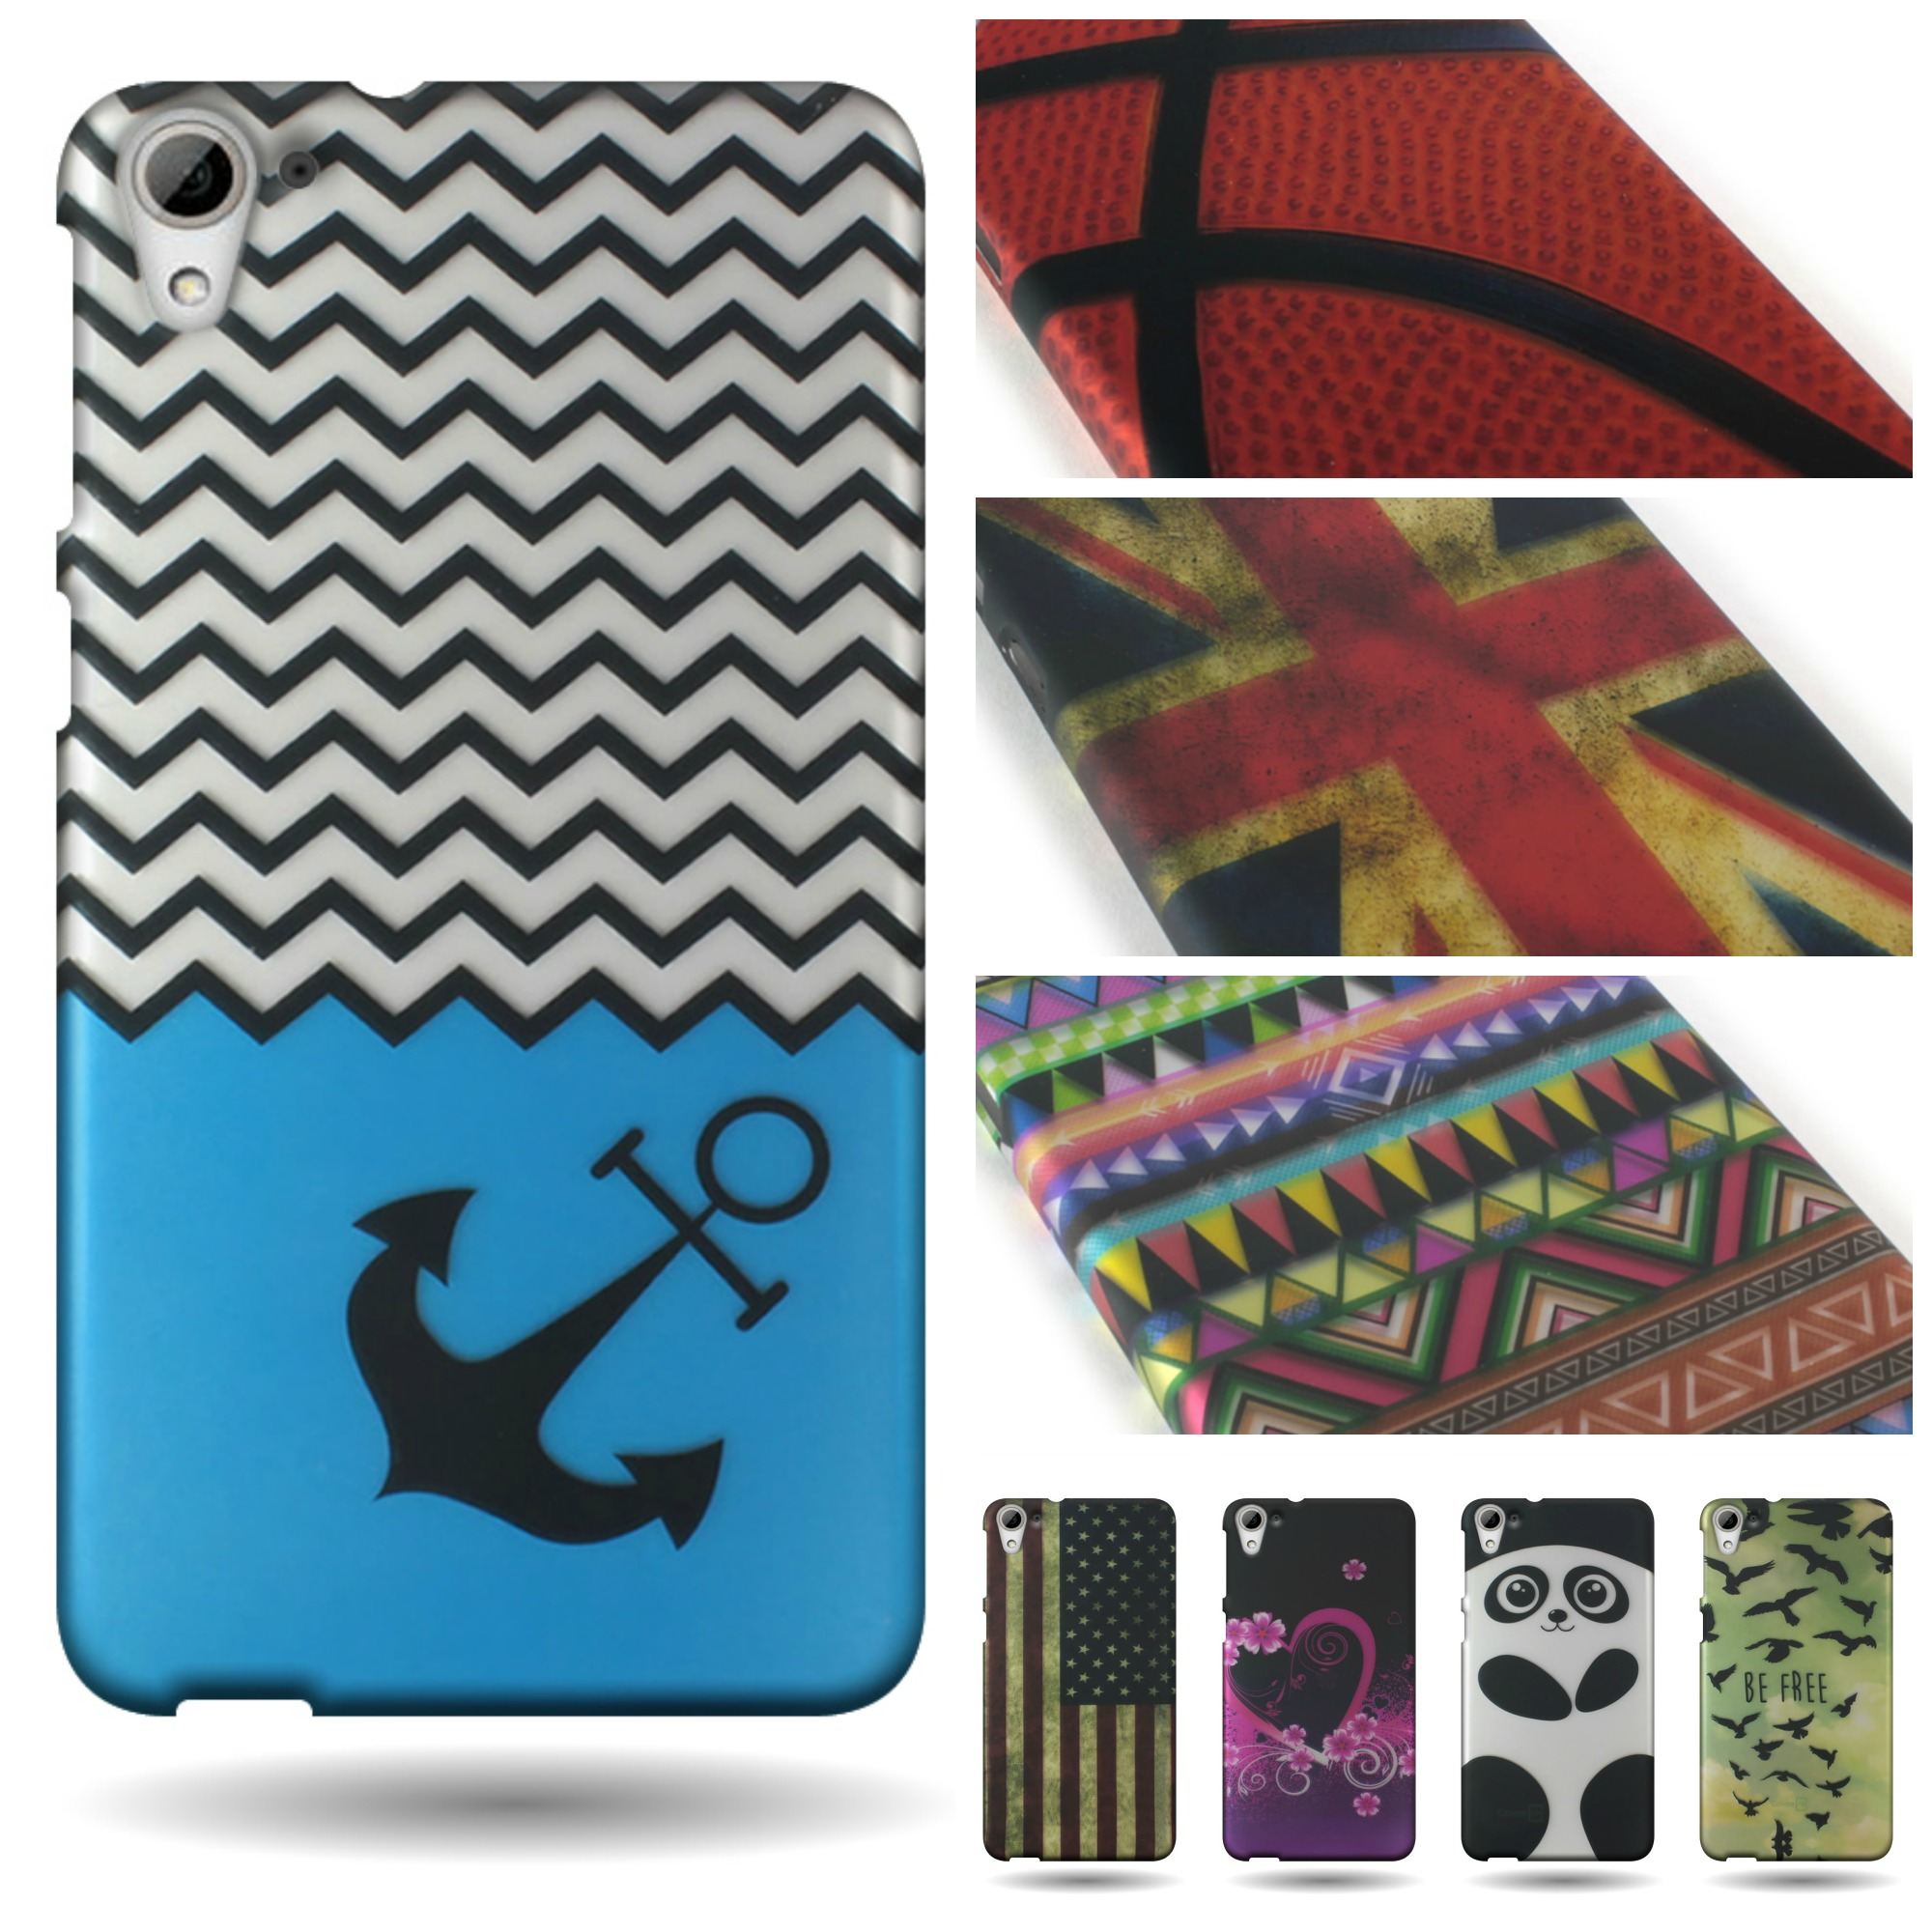 new product 98b63 174c7 For HTC Desire 826 Thin Design Case Hard Slim Snap On Phone ...